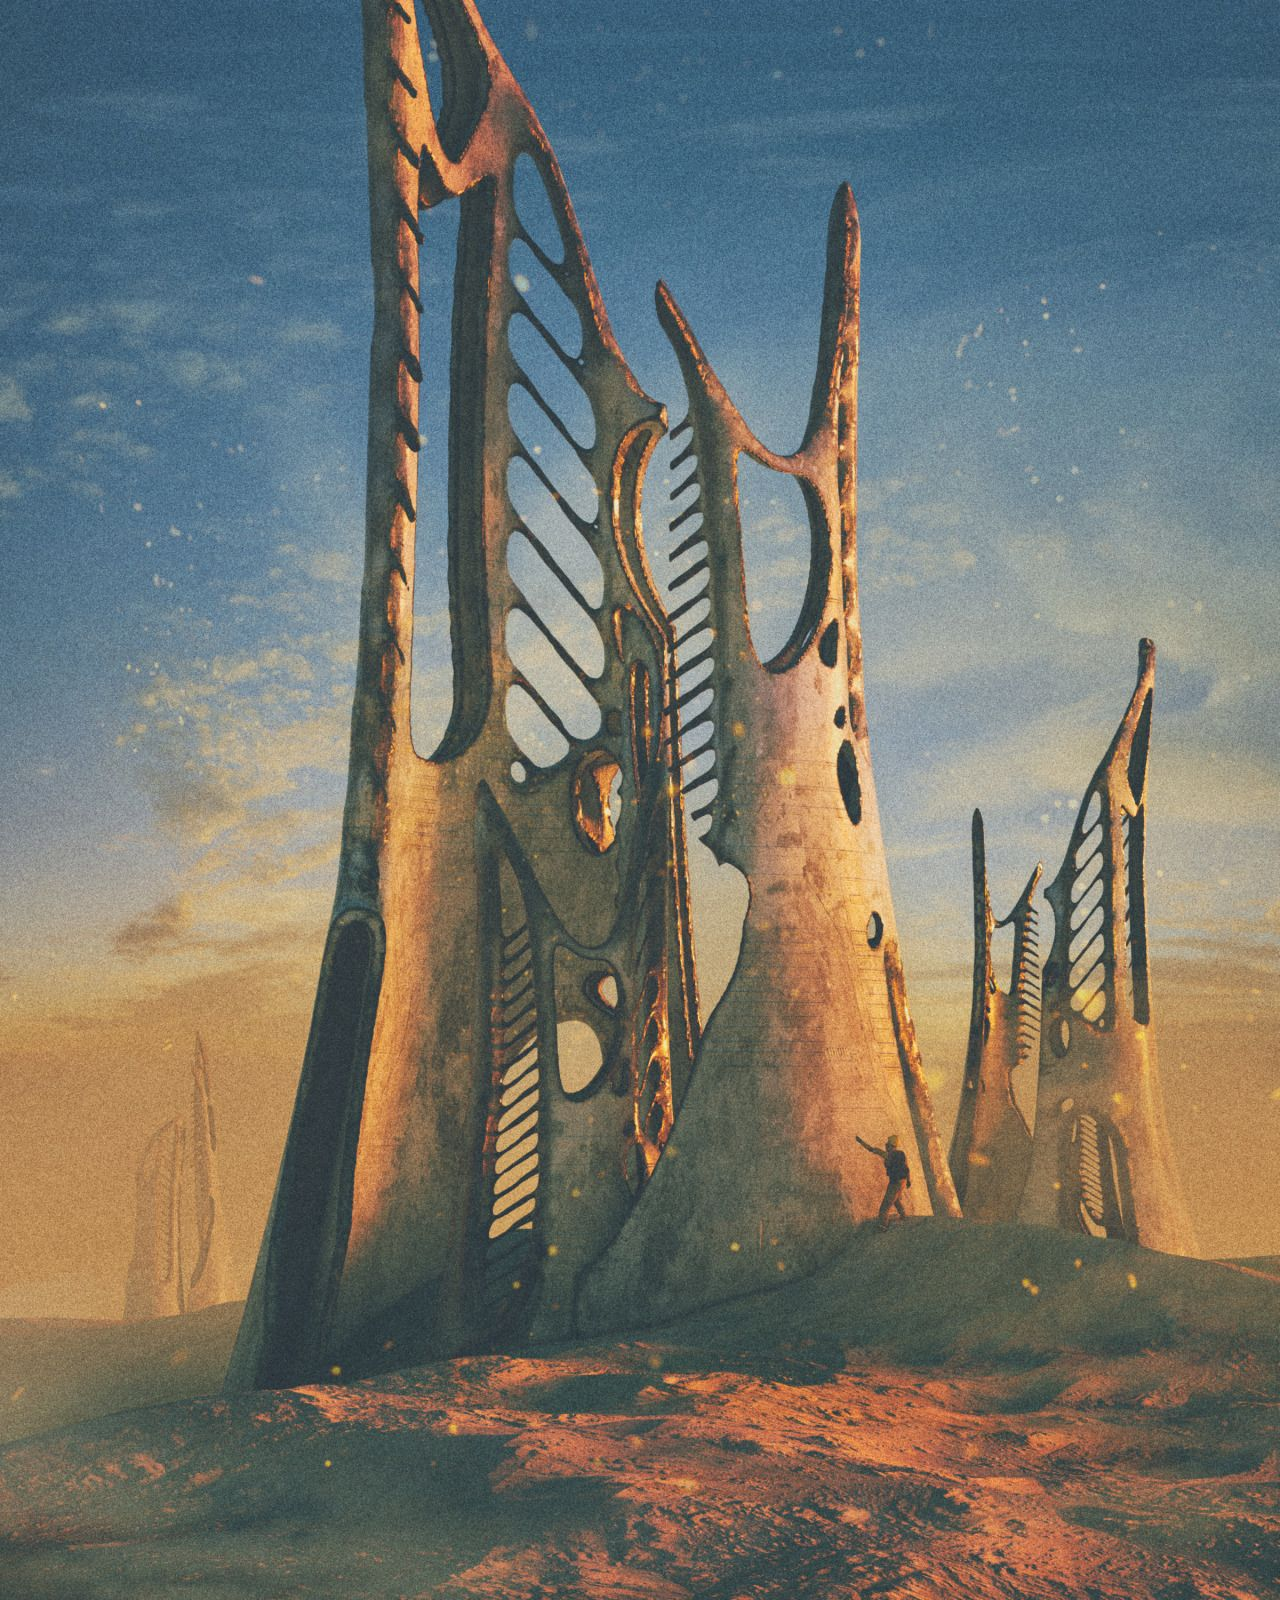 The Vault of Retro Sci-Fi — beeple: GREAT CARCASS | Ruined Cities